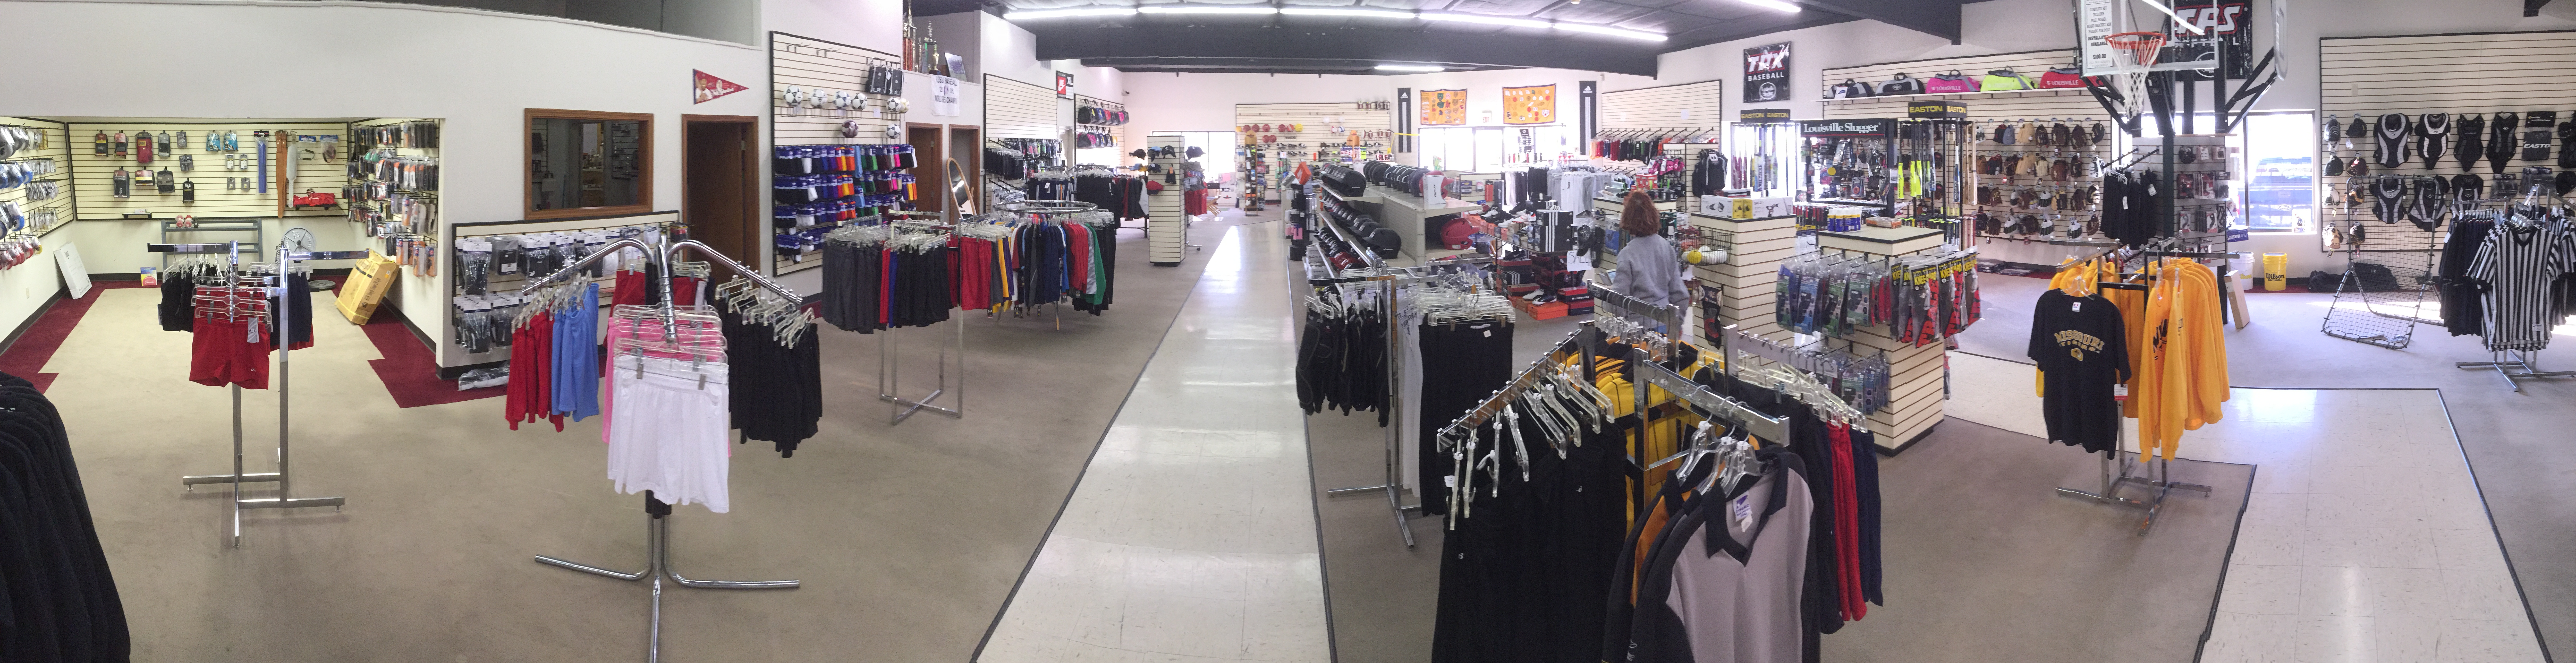 Your Sedalia Missouri Source for Sporting Goods